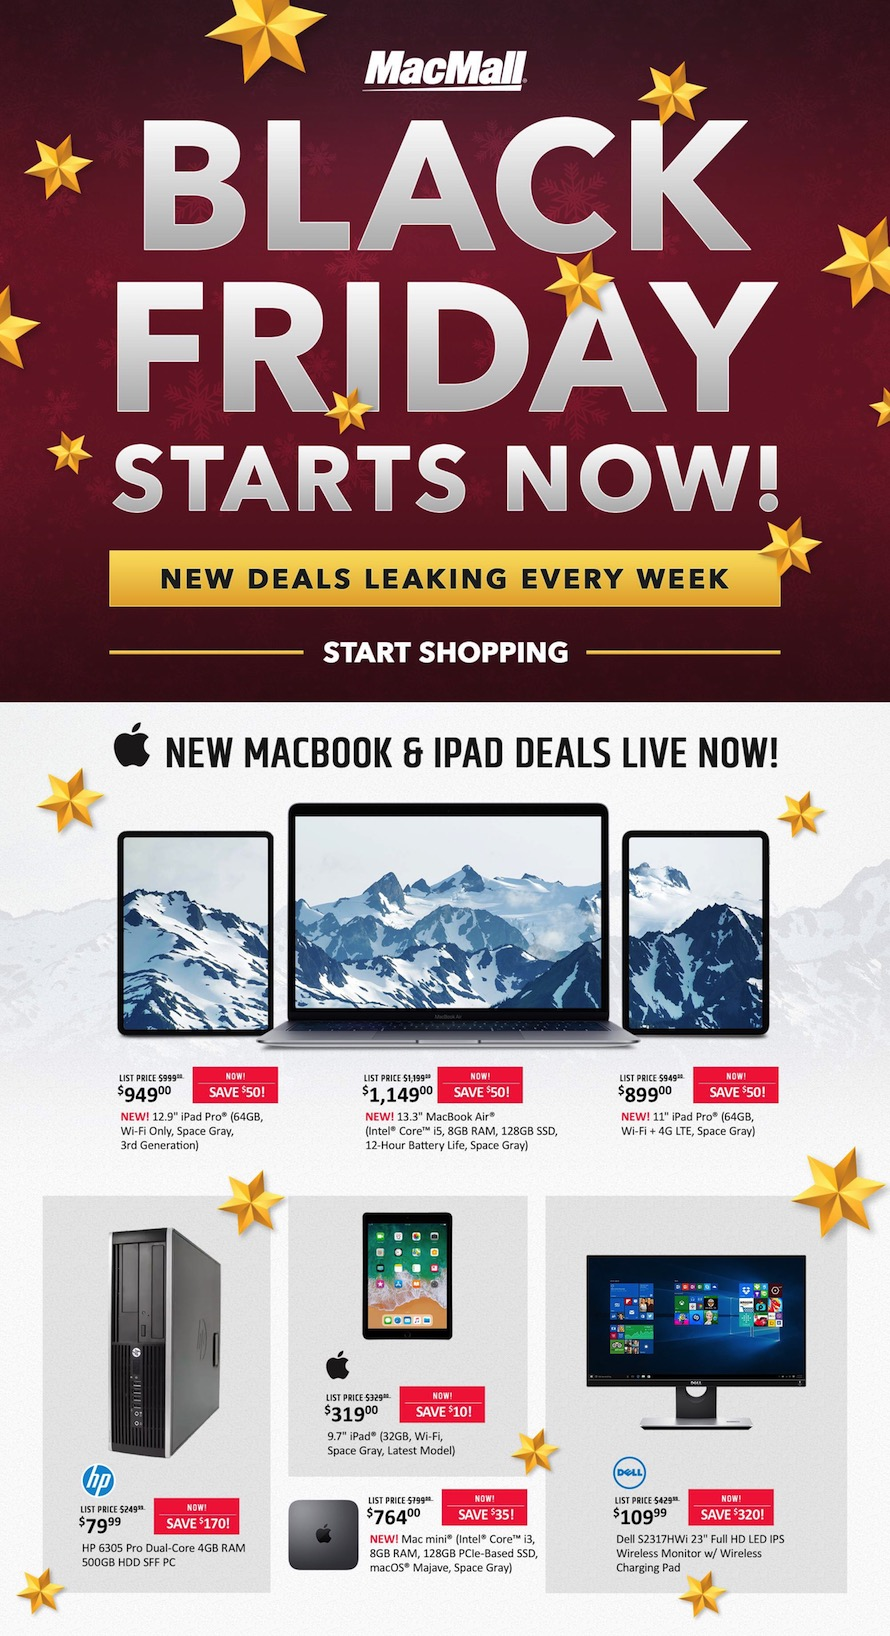 MacMall Black Friday page 1